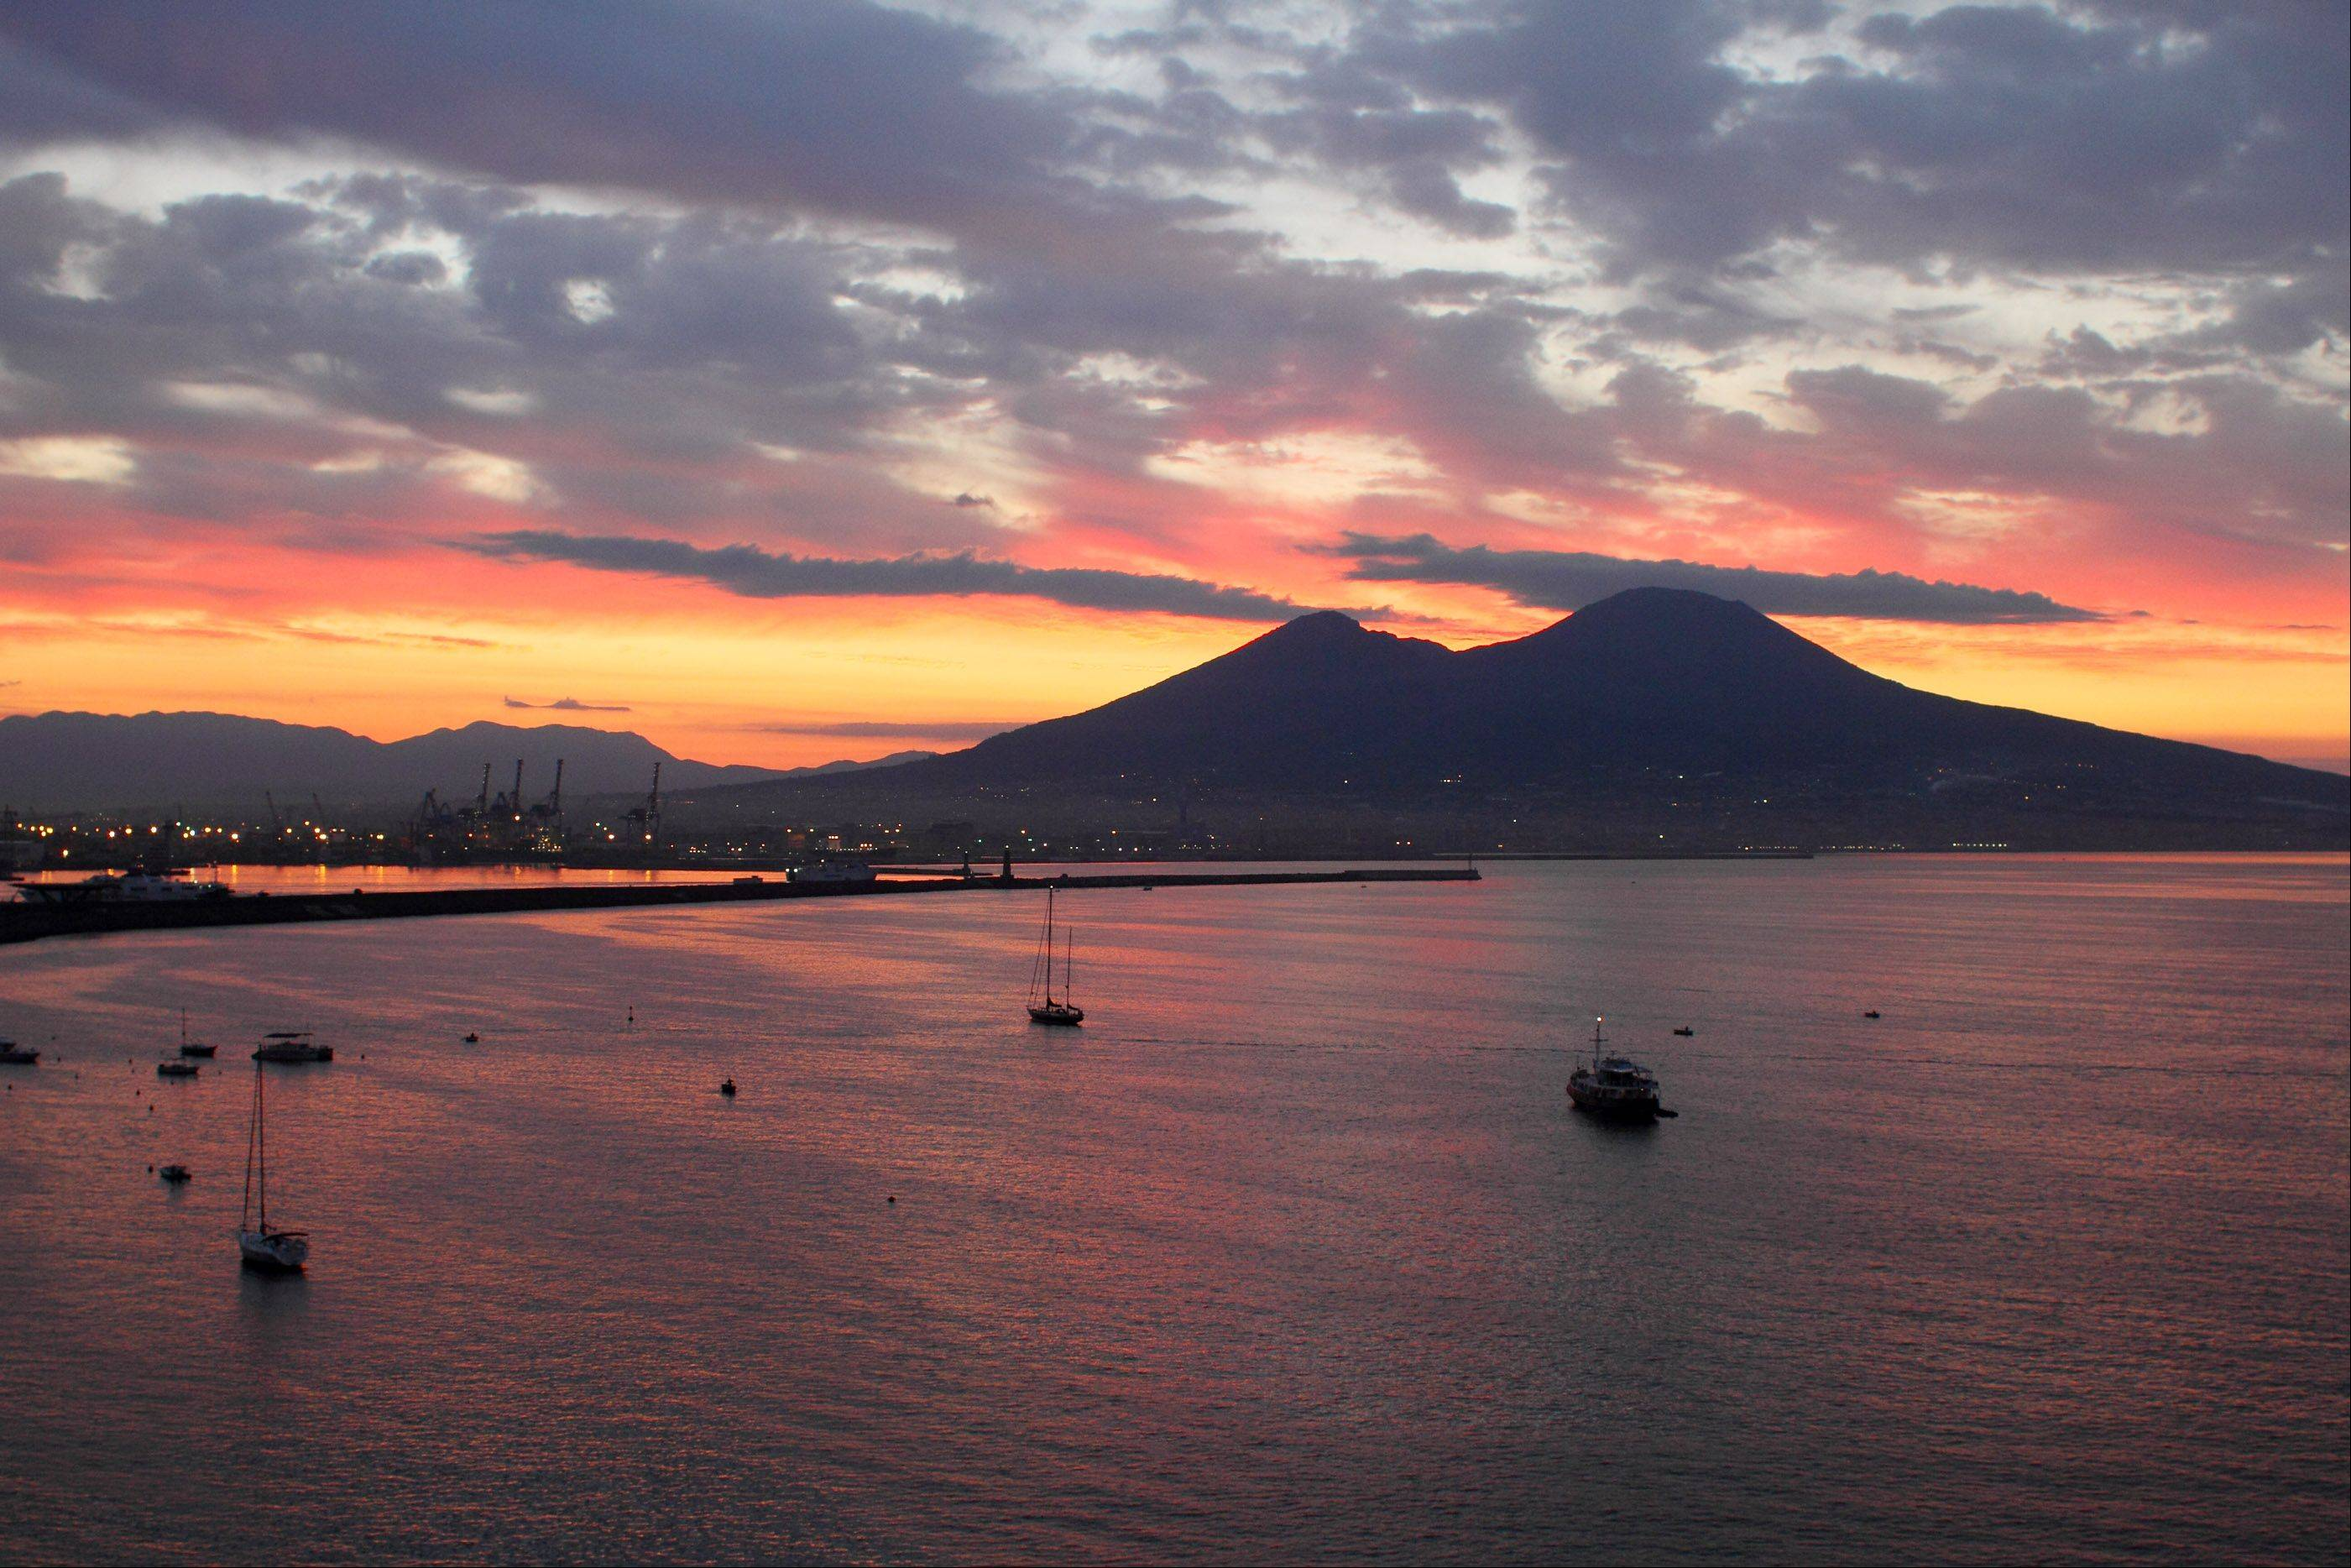 This is a picture of the morning sunrise over Mt. Vesuvius in Naples, Italy taken on 9/18/12. The light scatters through the clouds and reflects the most beautiful colors over the Bay of Naples! I used a 28 mm lens on my Canon 7D.